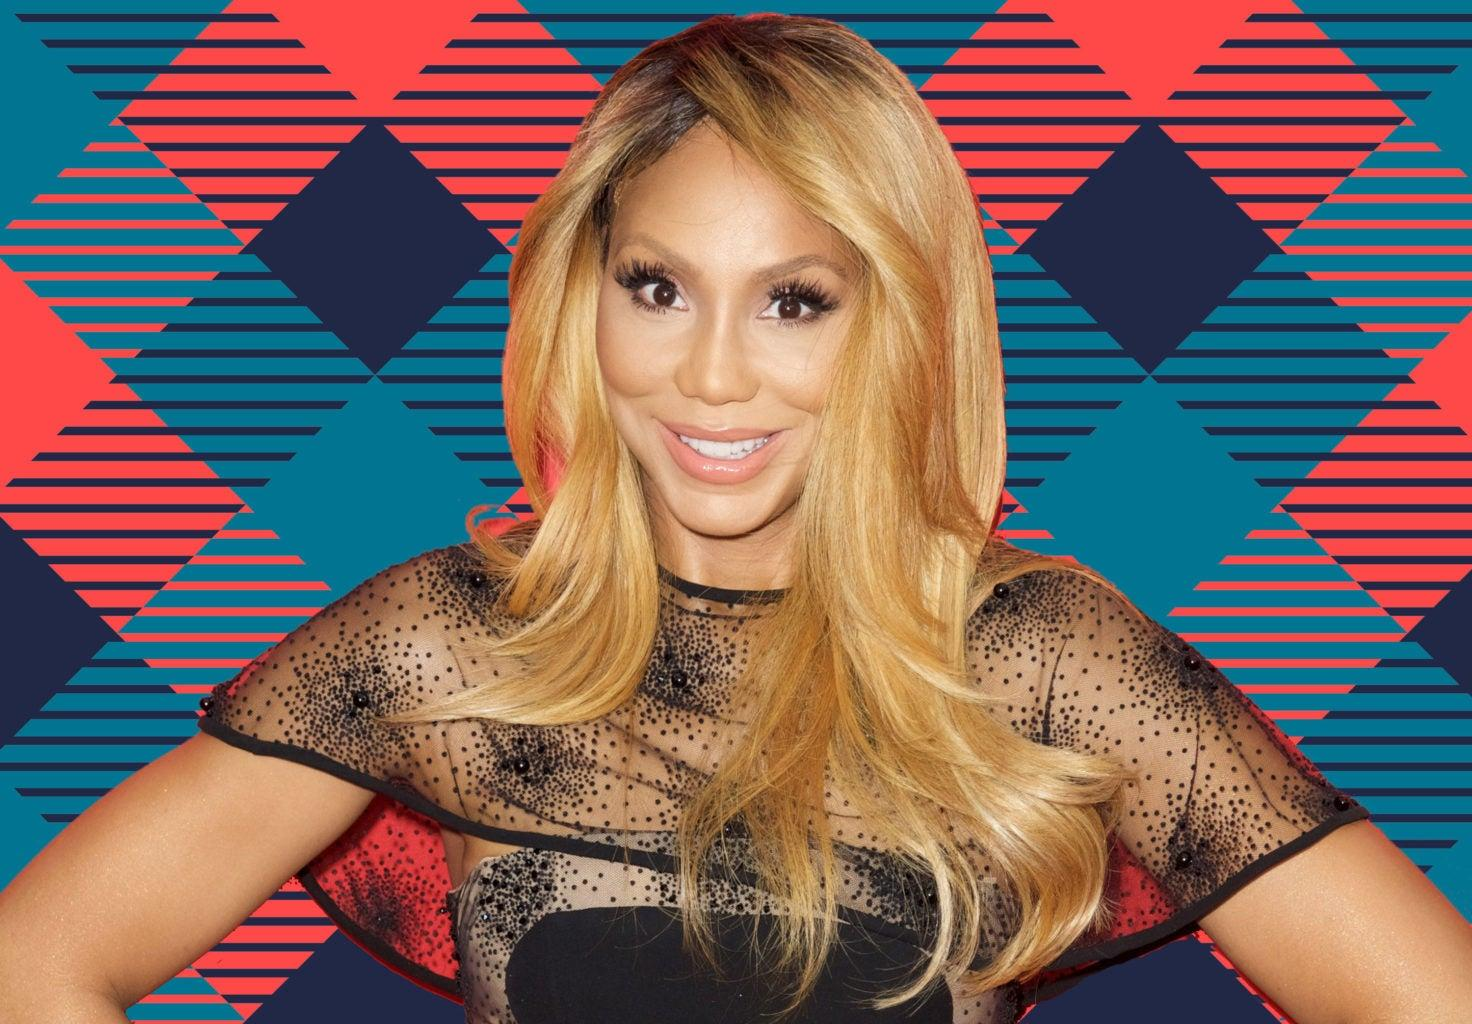 Tamar Braxton Shows Off Her Tiny Ponytail And Fans Cannot Stop Making Jokes